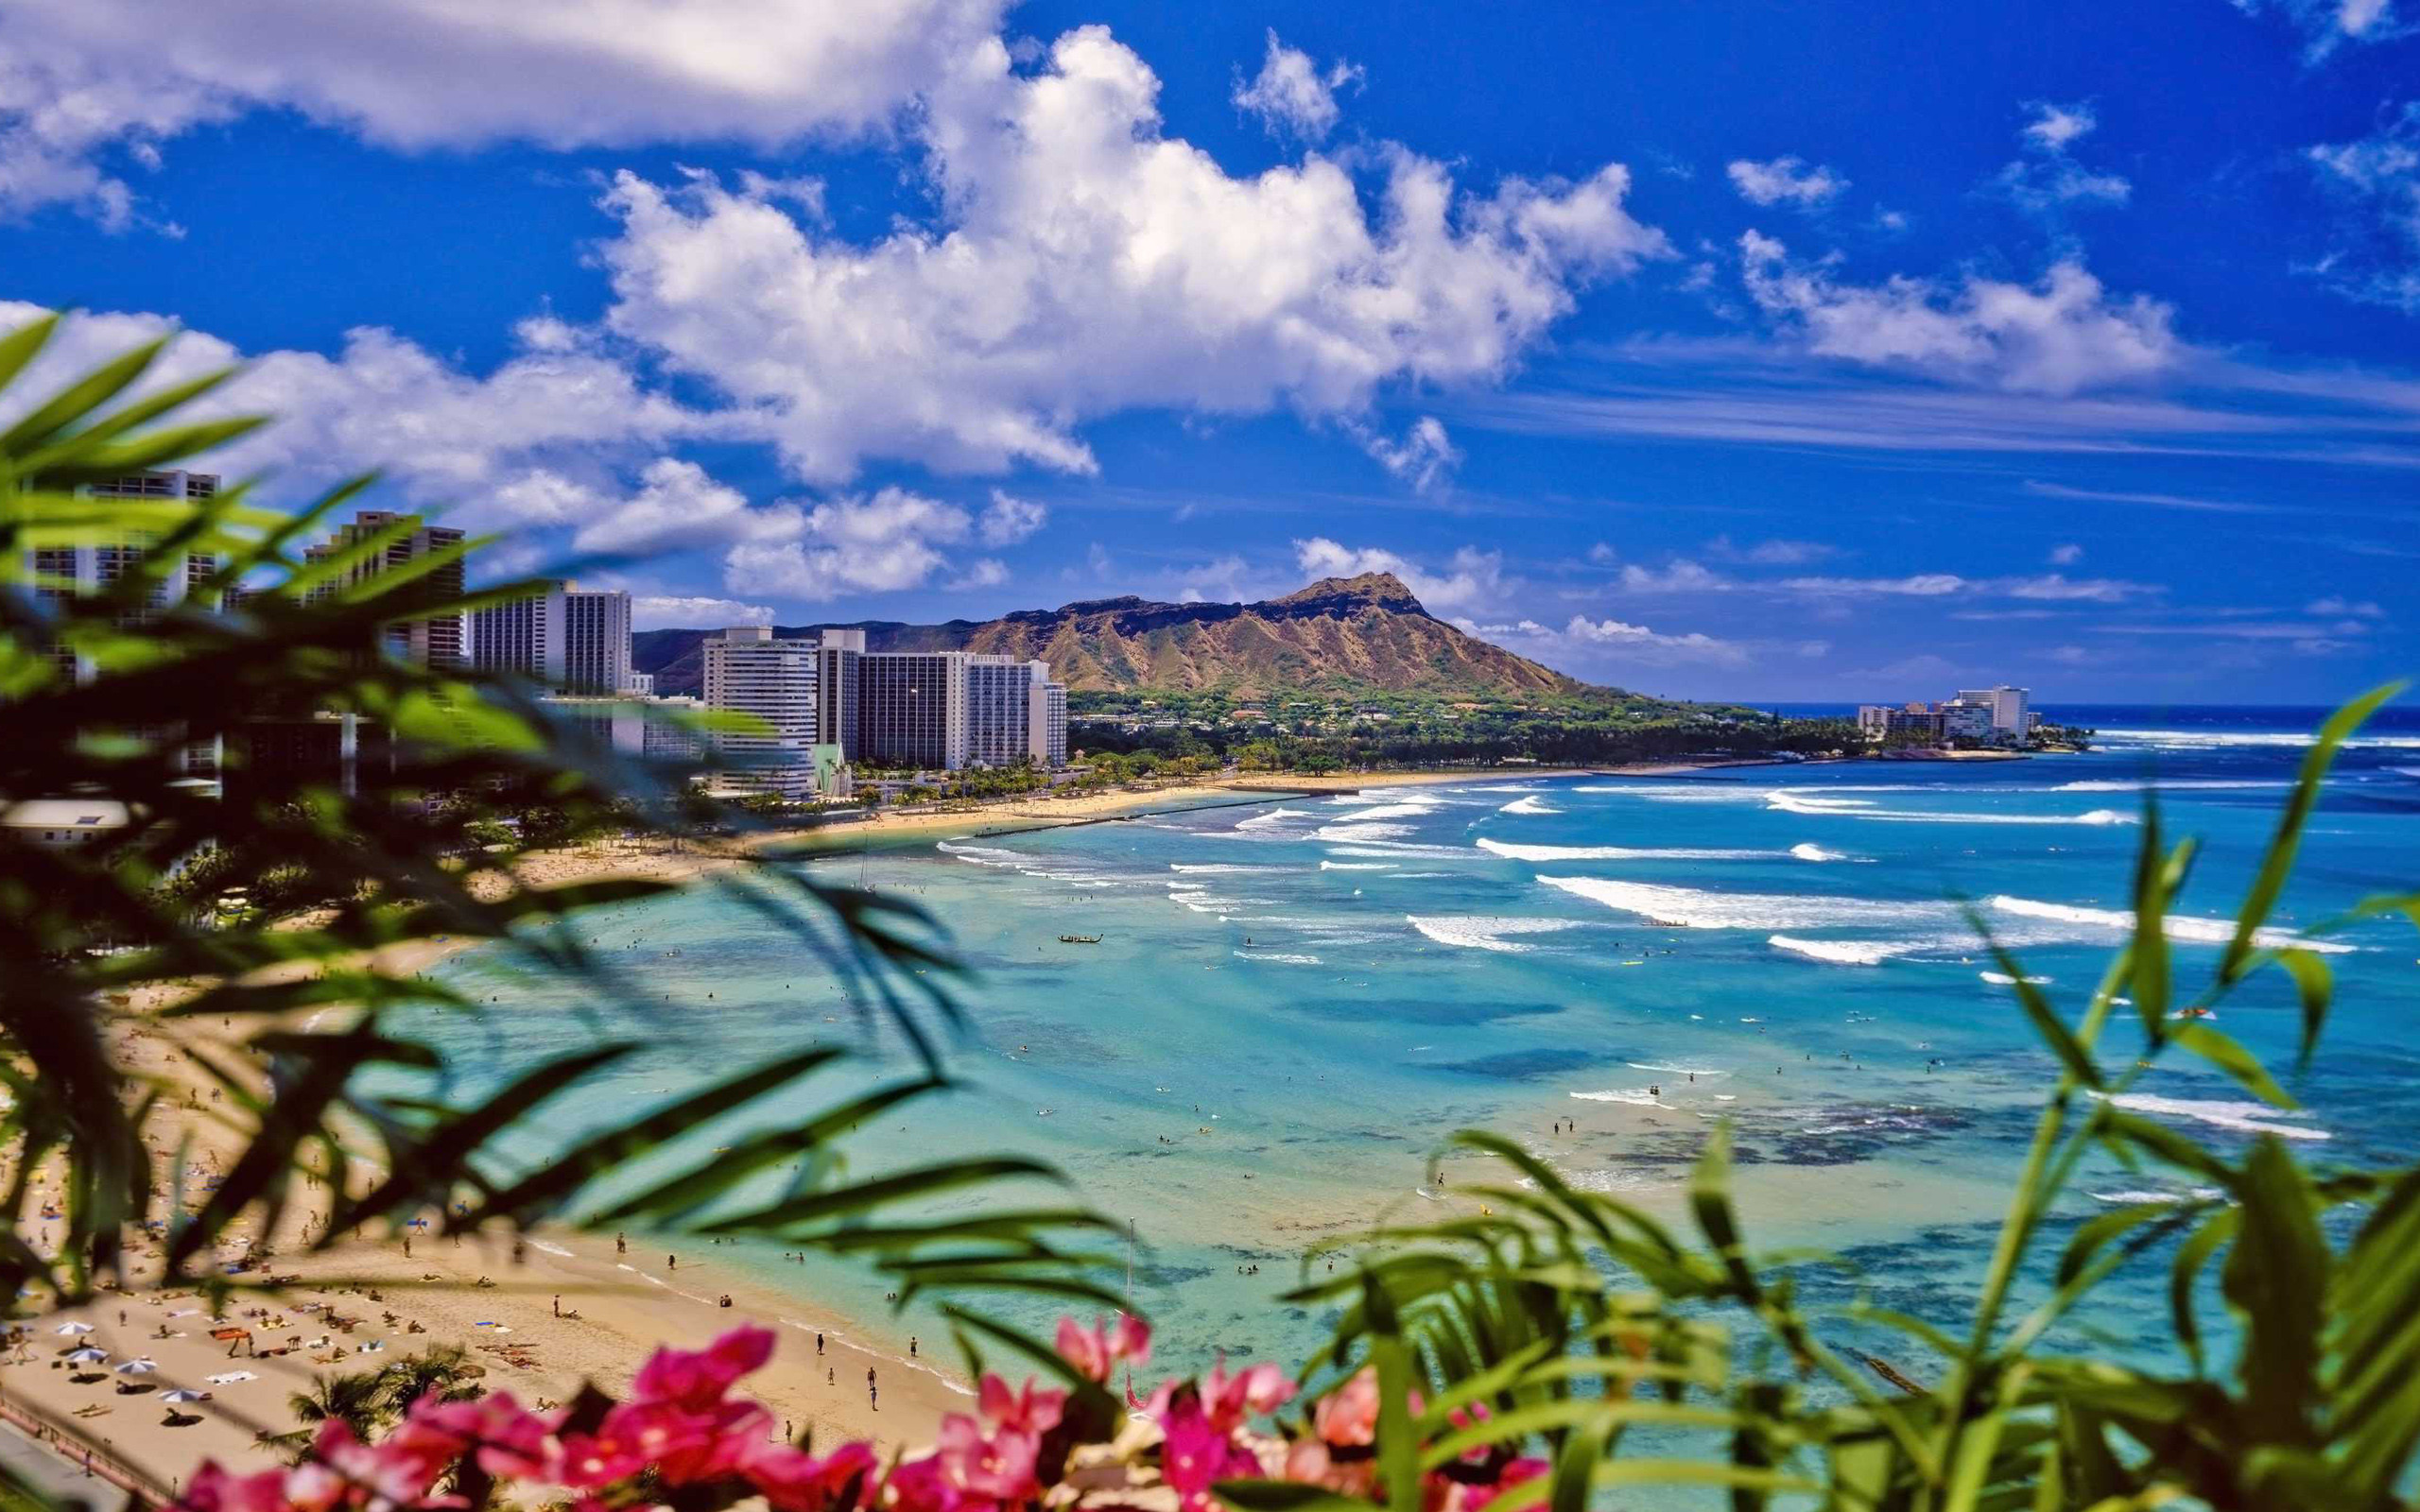 Waikiki Beach Wallpaper 60 images 2560x1600